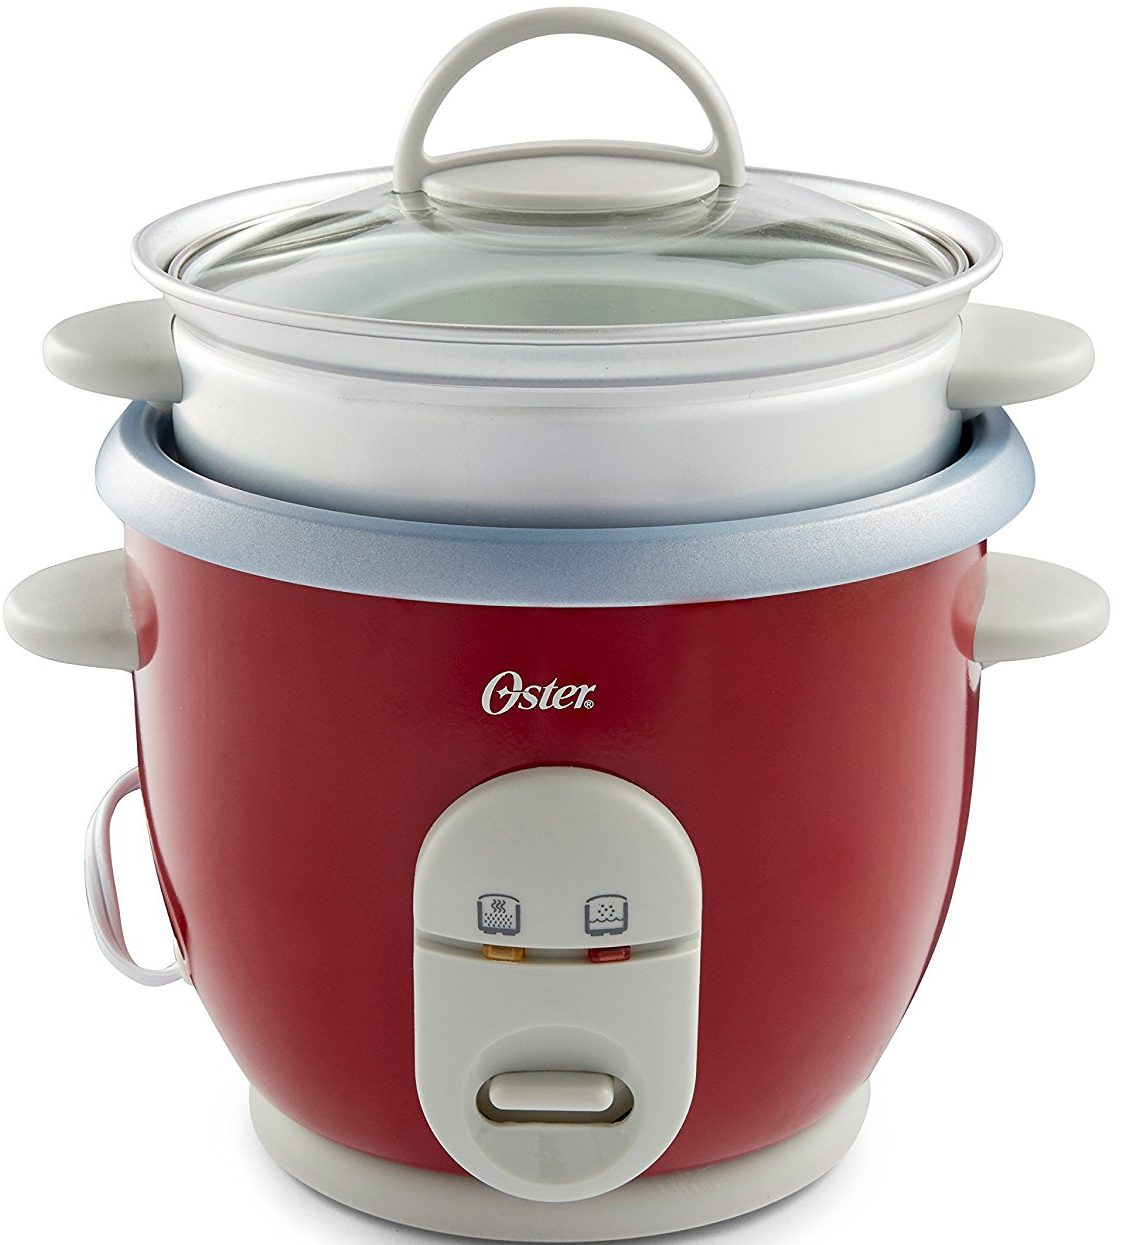 Oster Brown Rice Cooker